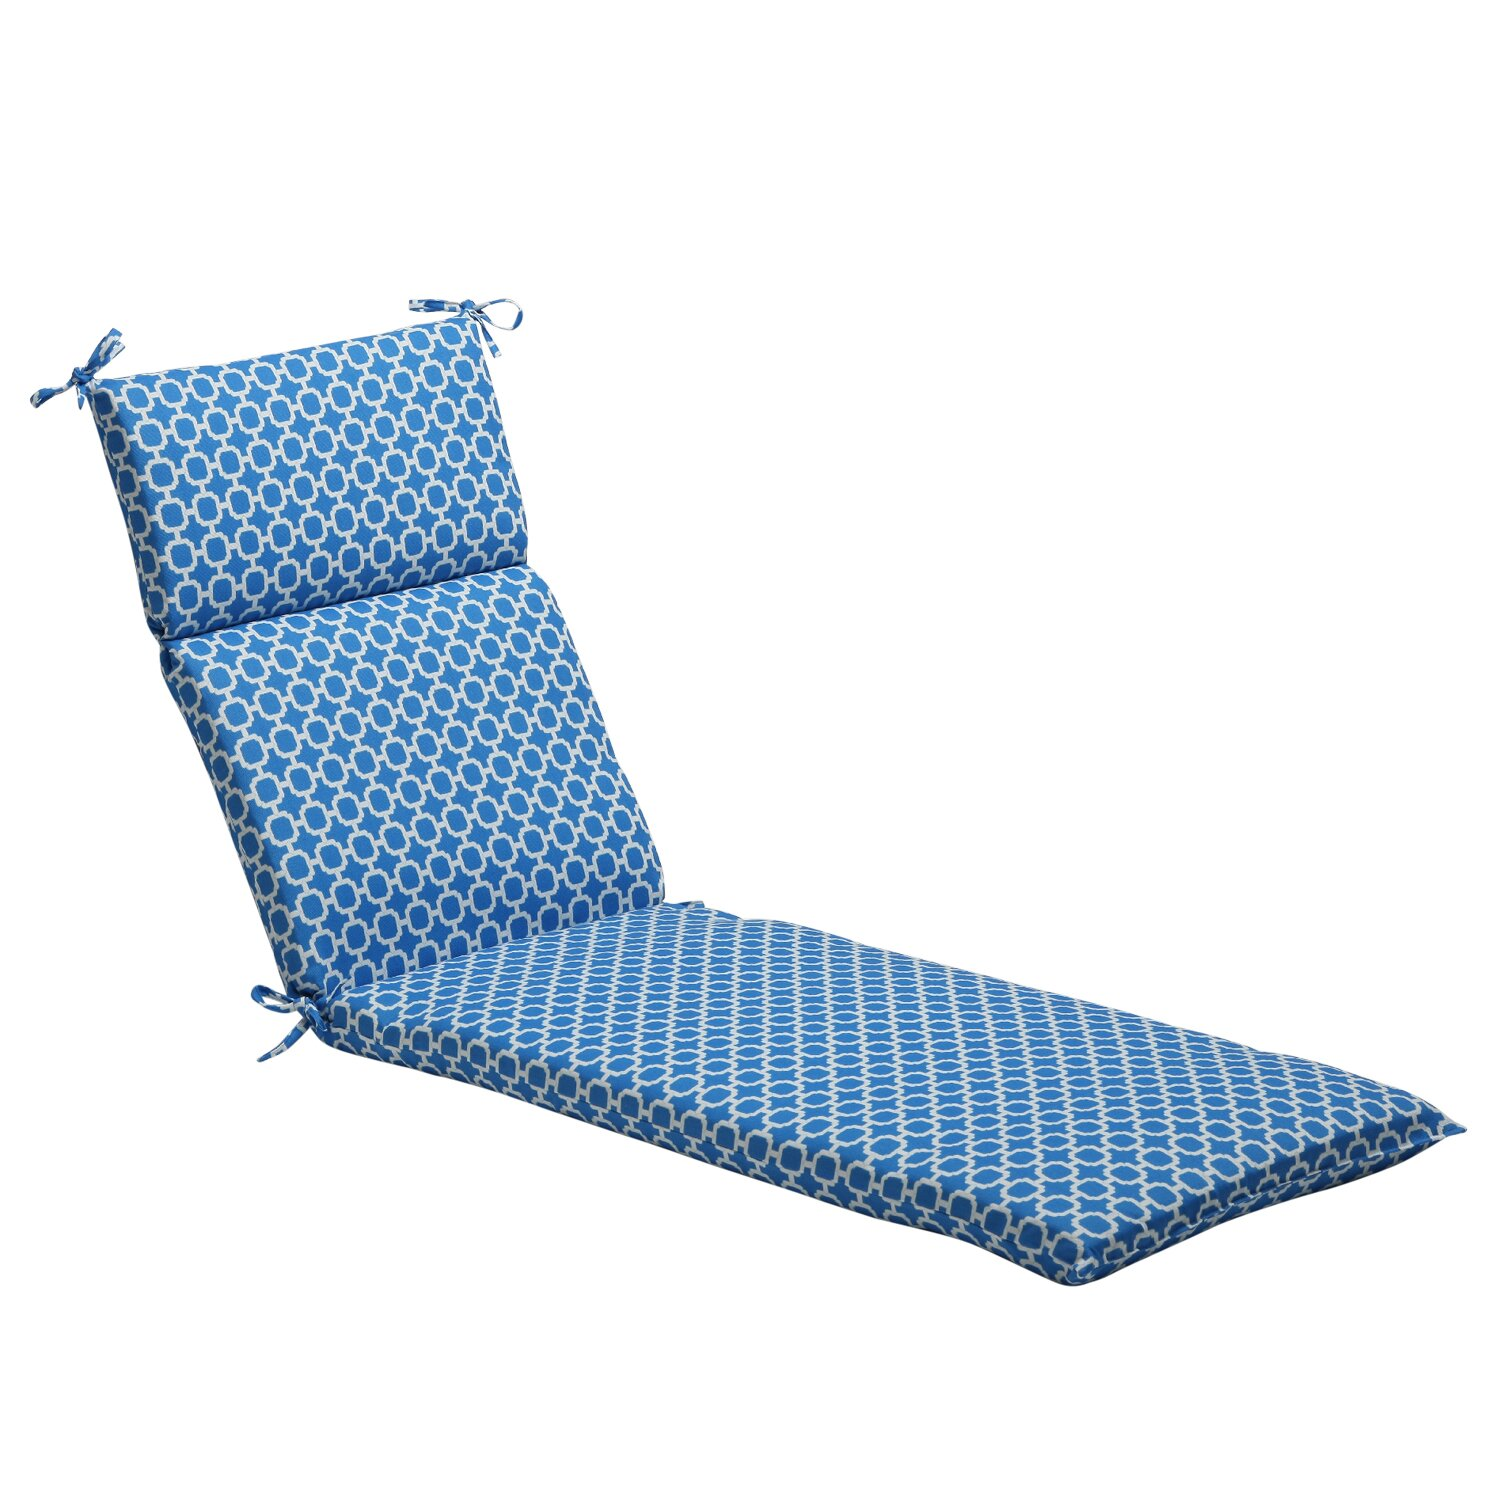 Pillow Perfect Outdoor Chaise Lounge Cushion & Reviews